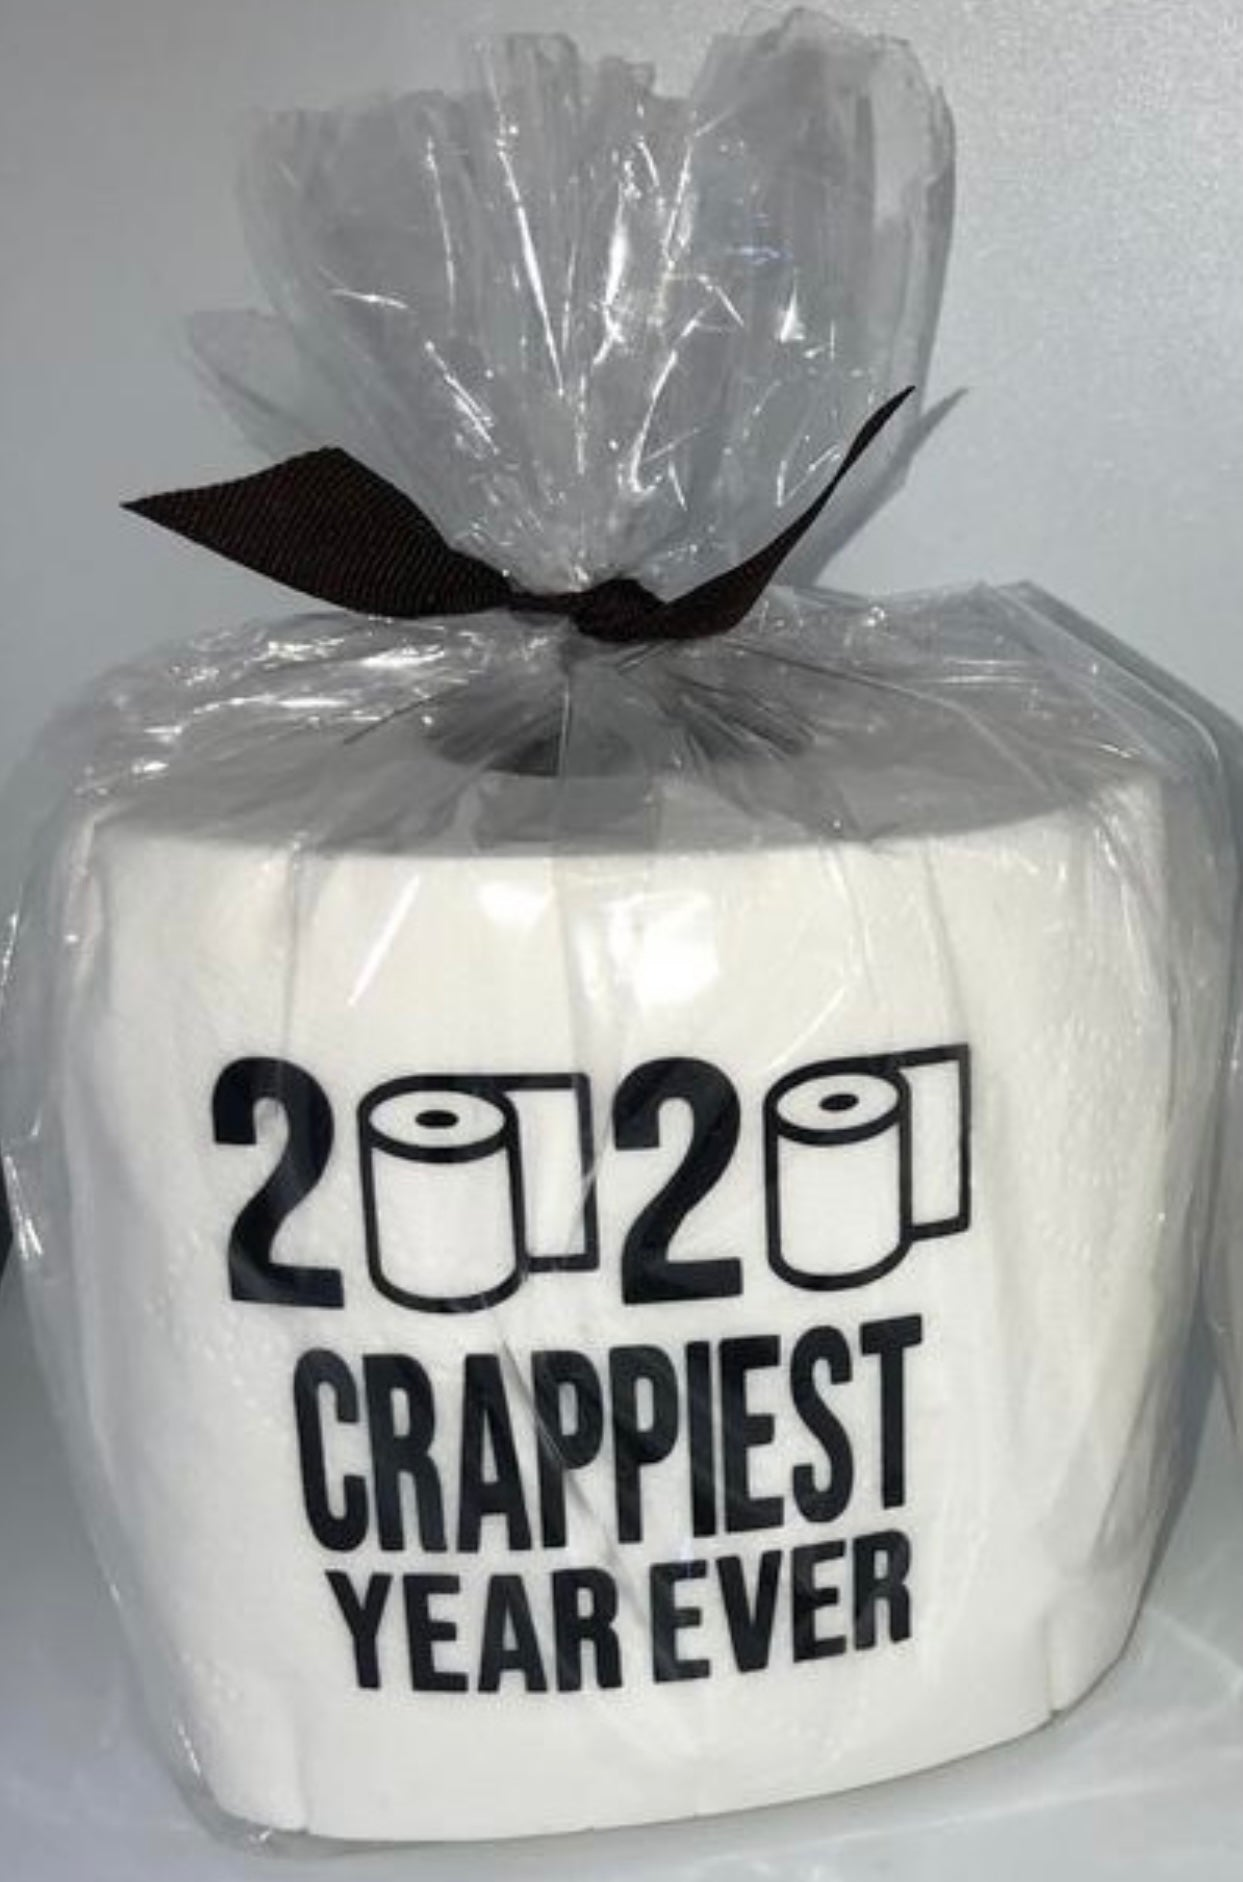 TOILET PAPER ROLL - 2020 CRAPPIEST YEAR